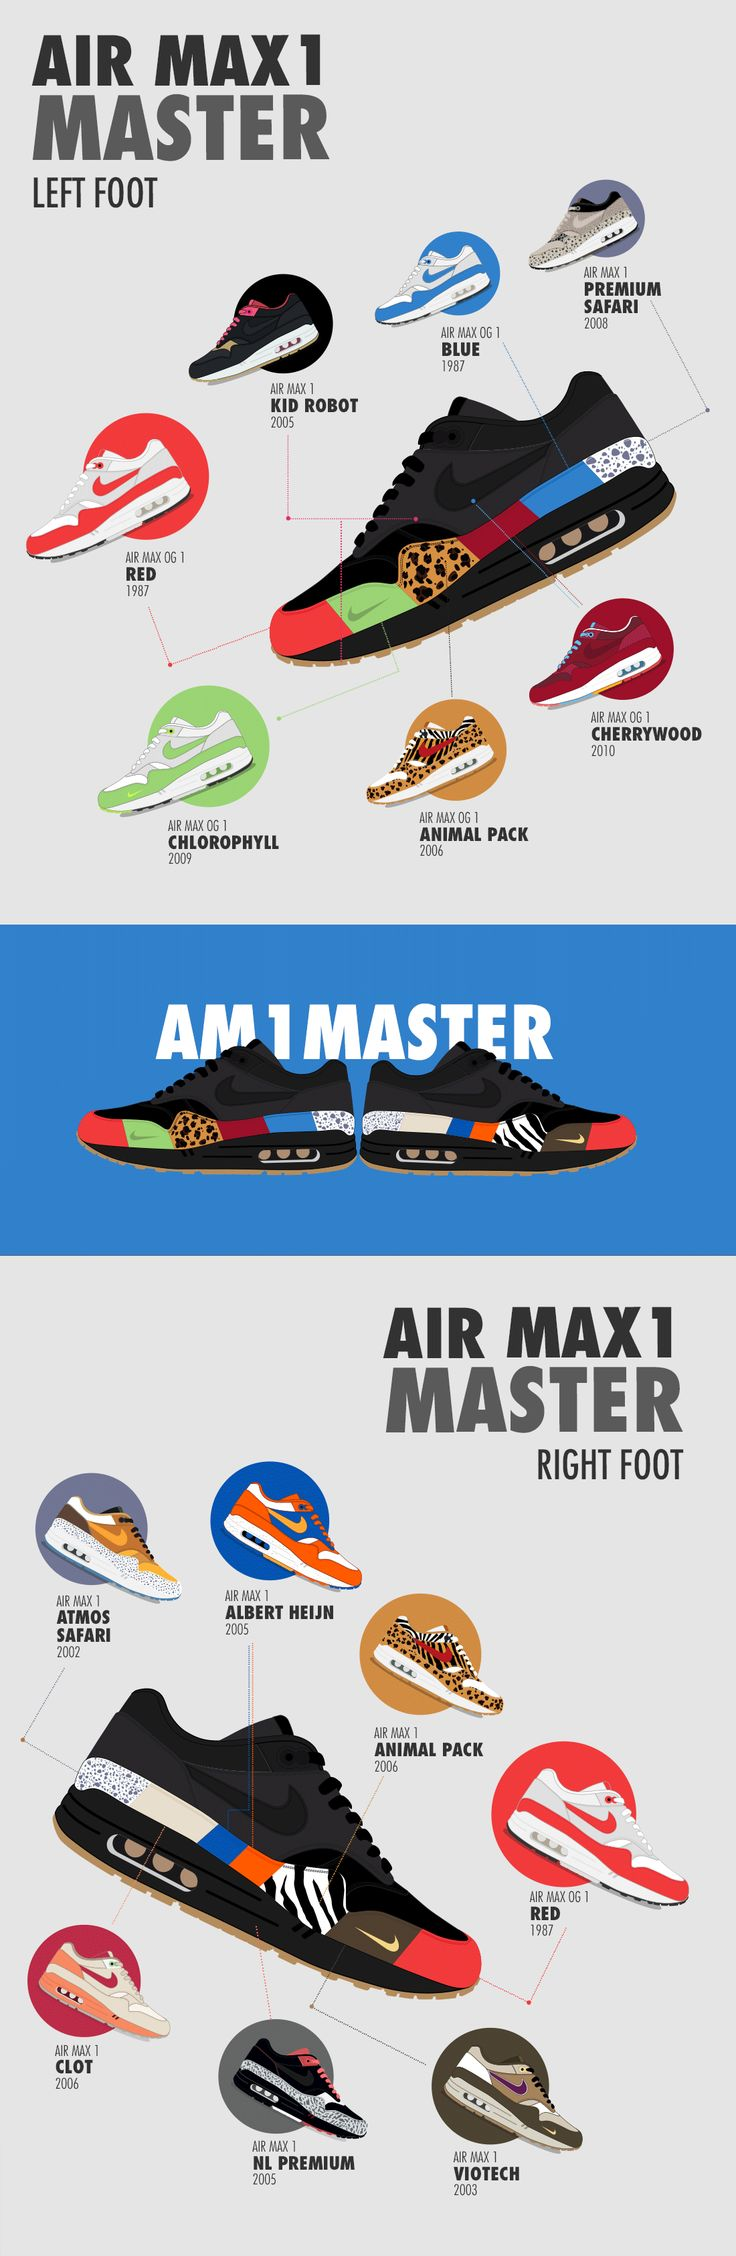 Nike Air Max 1 Master – Les inspirations | Sneakers.fr